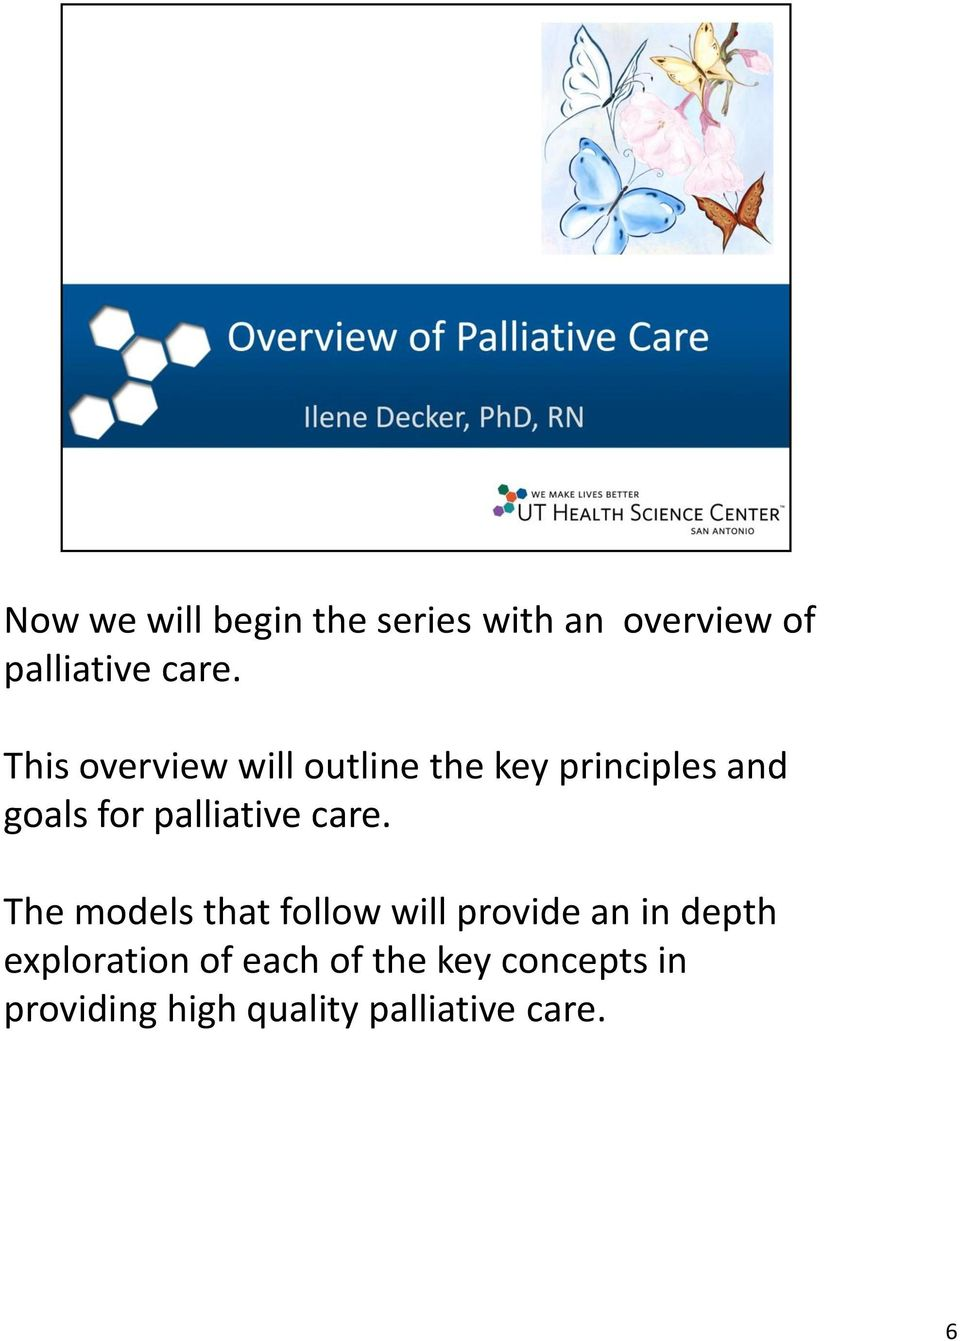 palliative care.